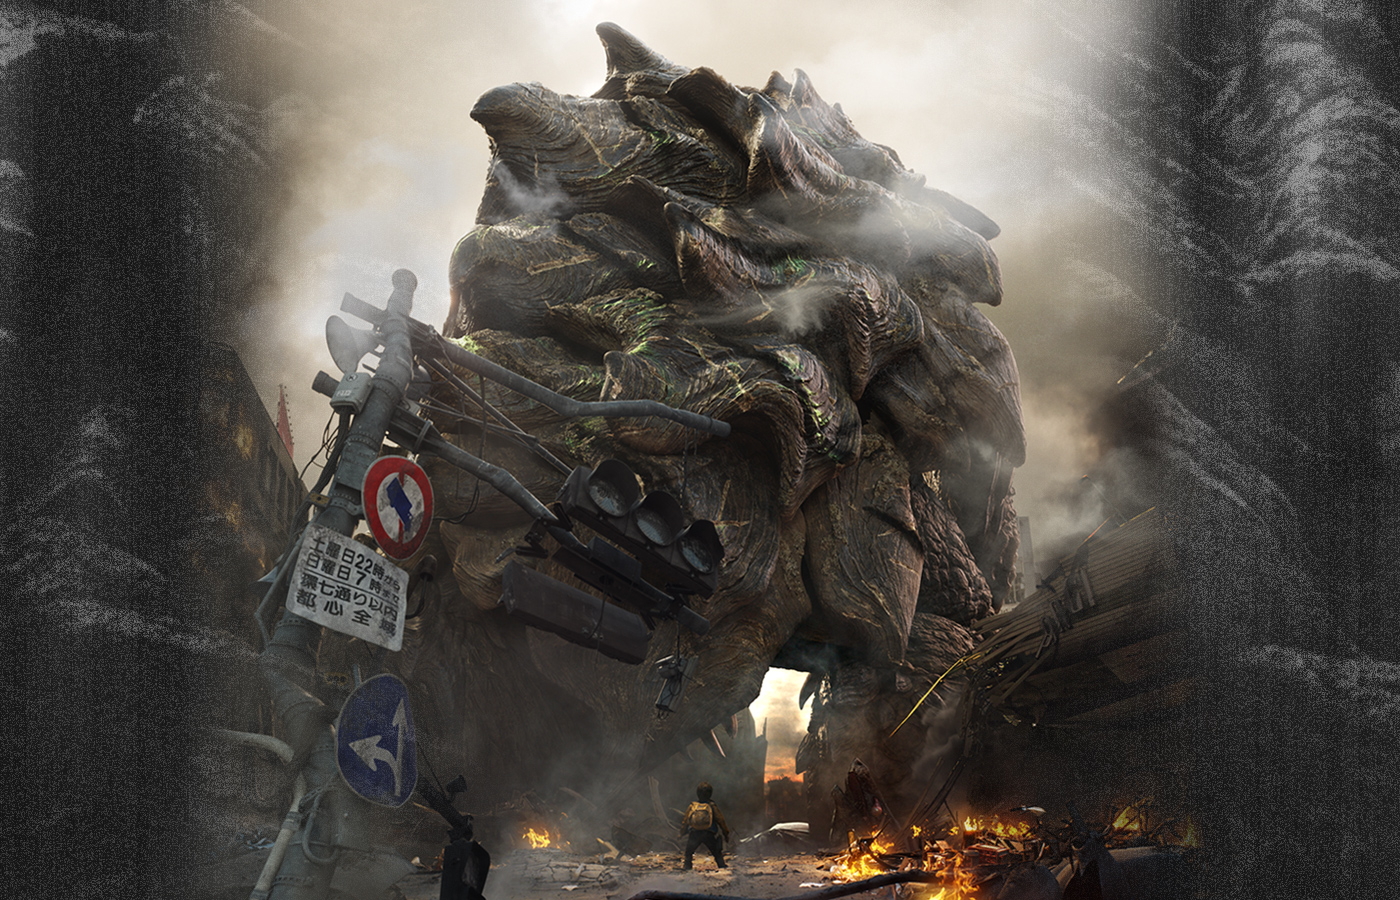 Gamera (Upcoming film) | Gojipedia | FANDOM powered by Wikia